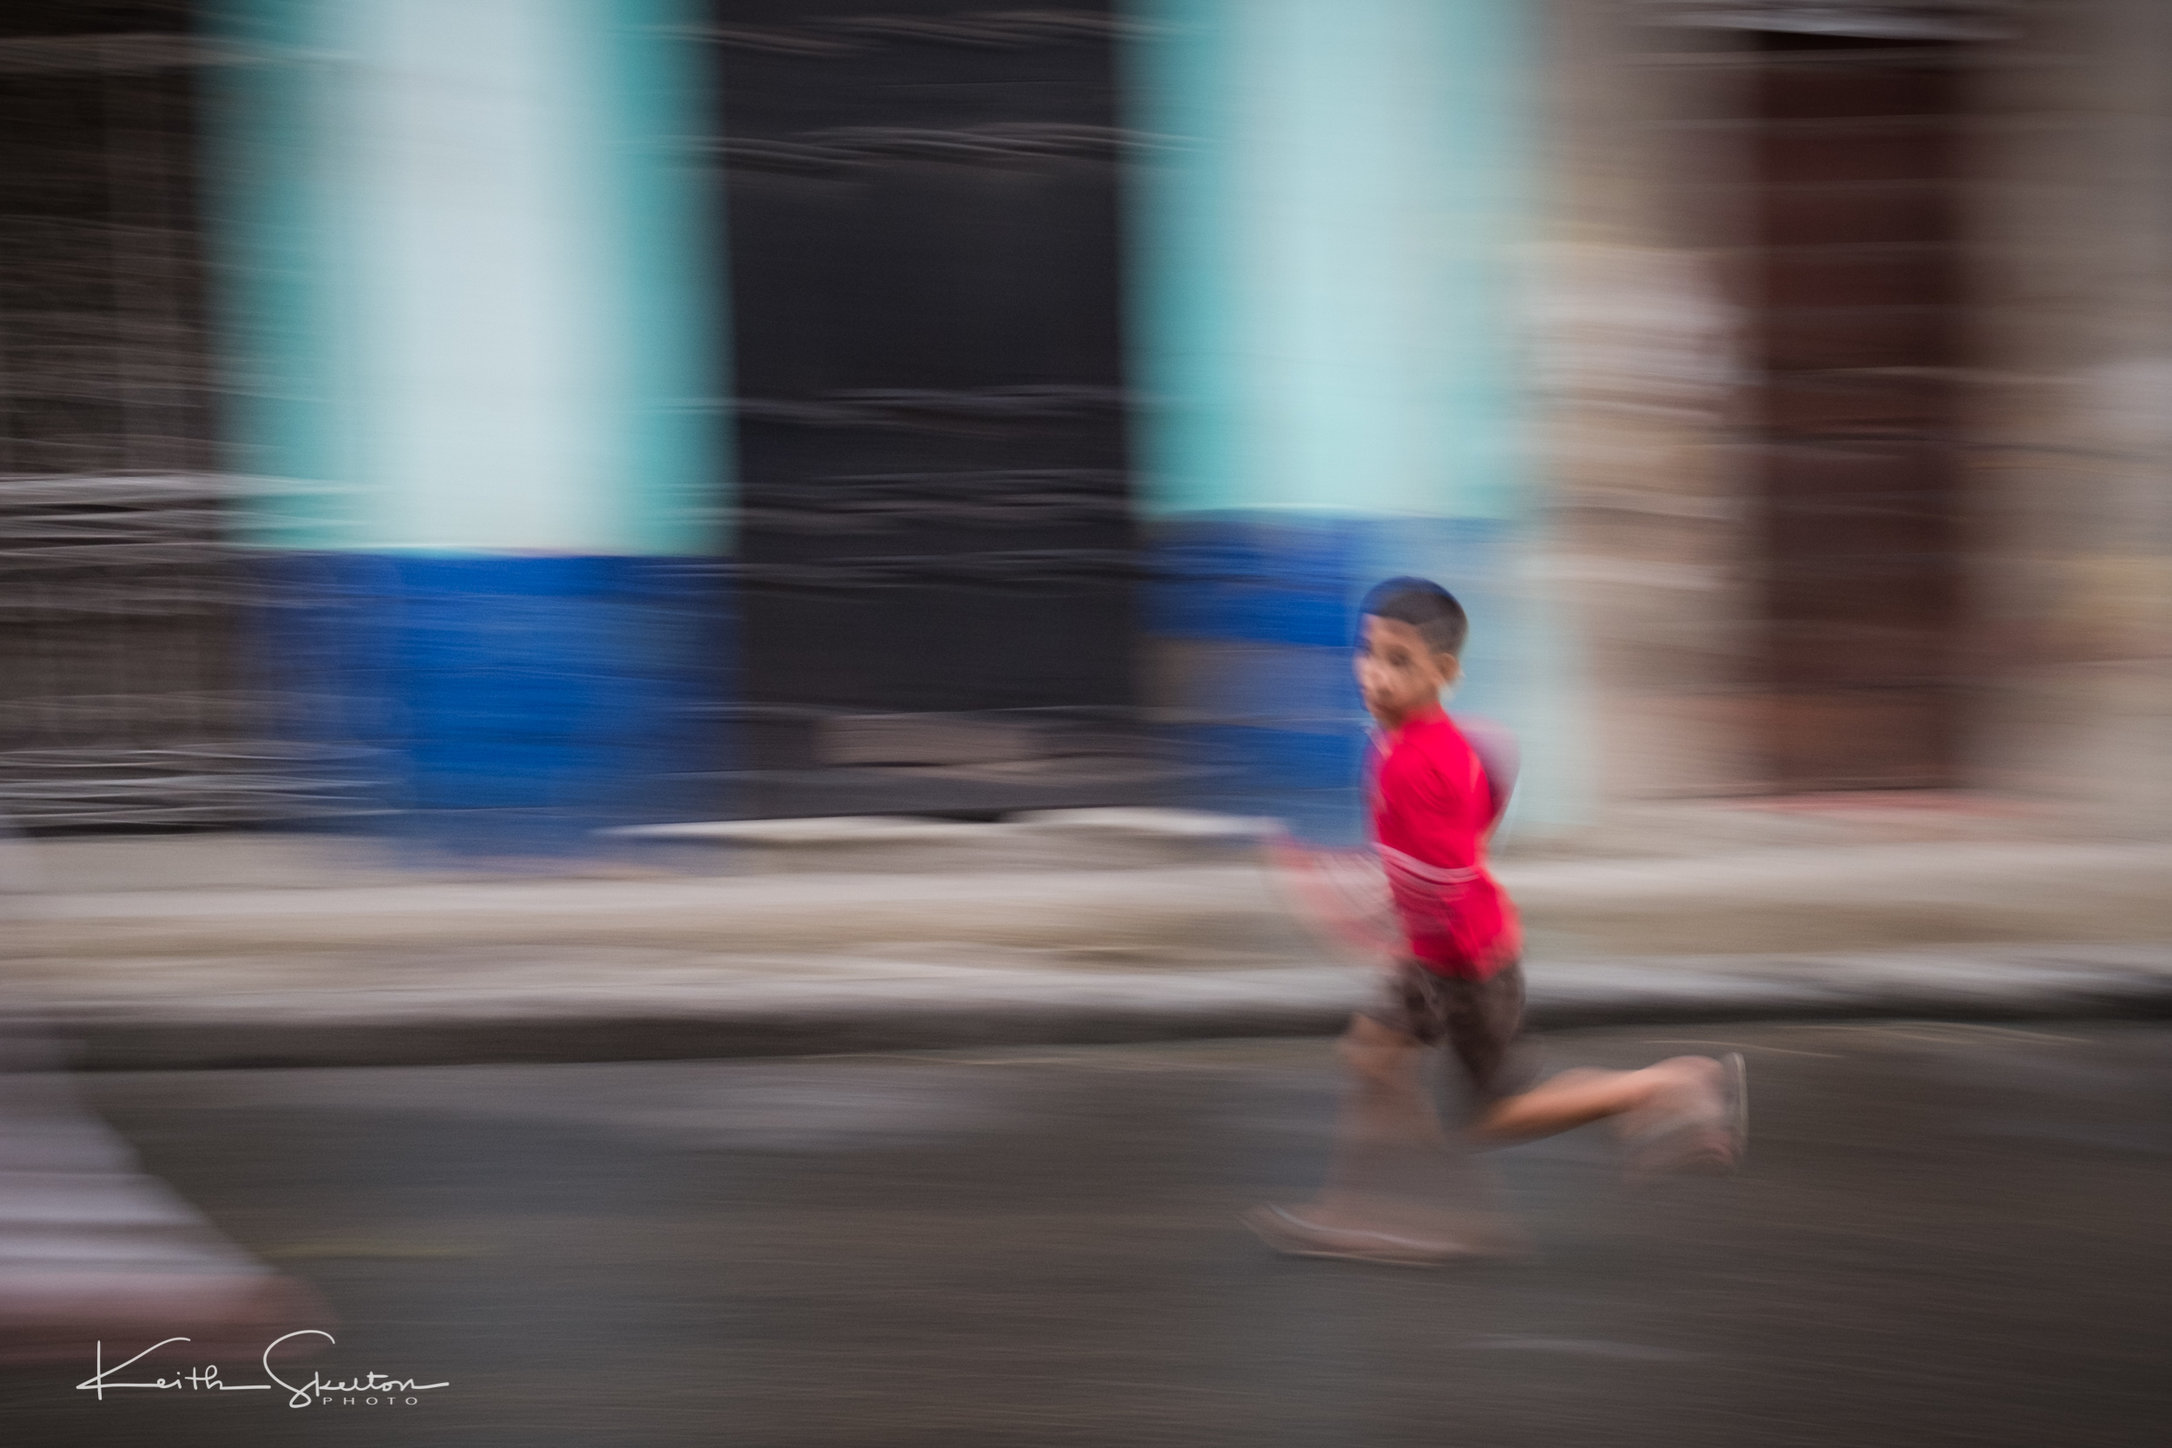 Keith Skelton Photo - CUBA-22.jpg